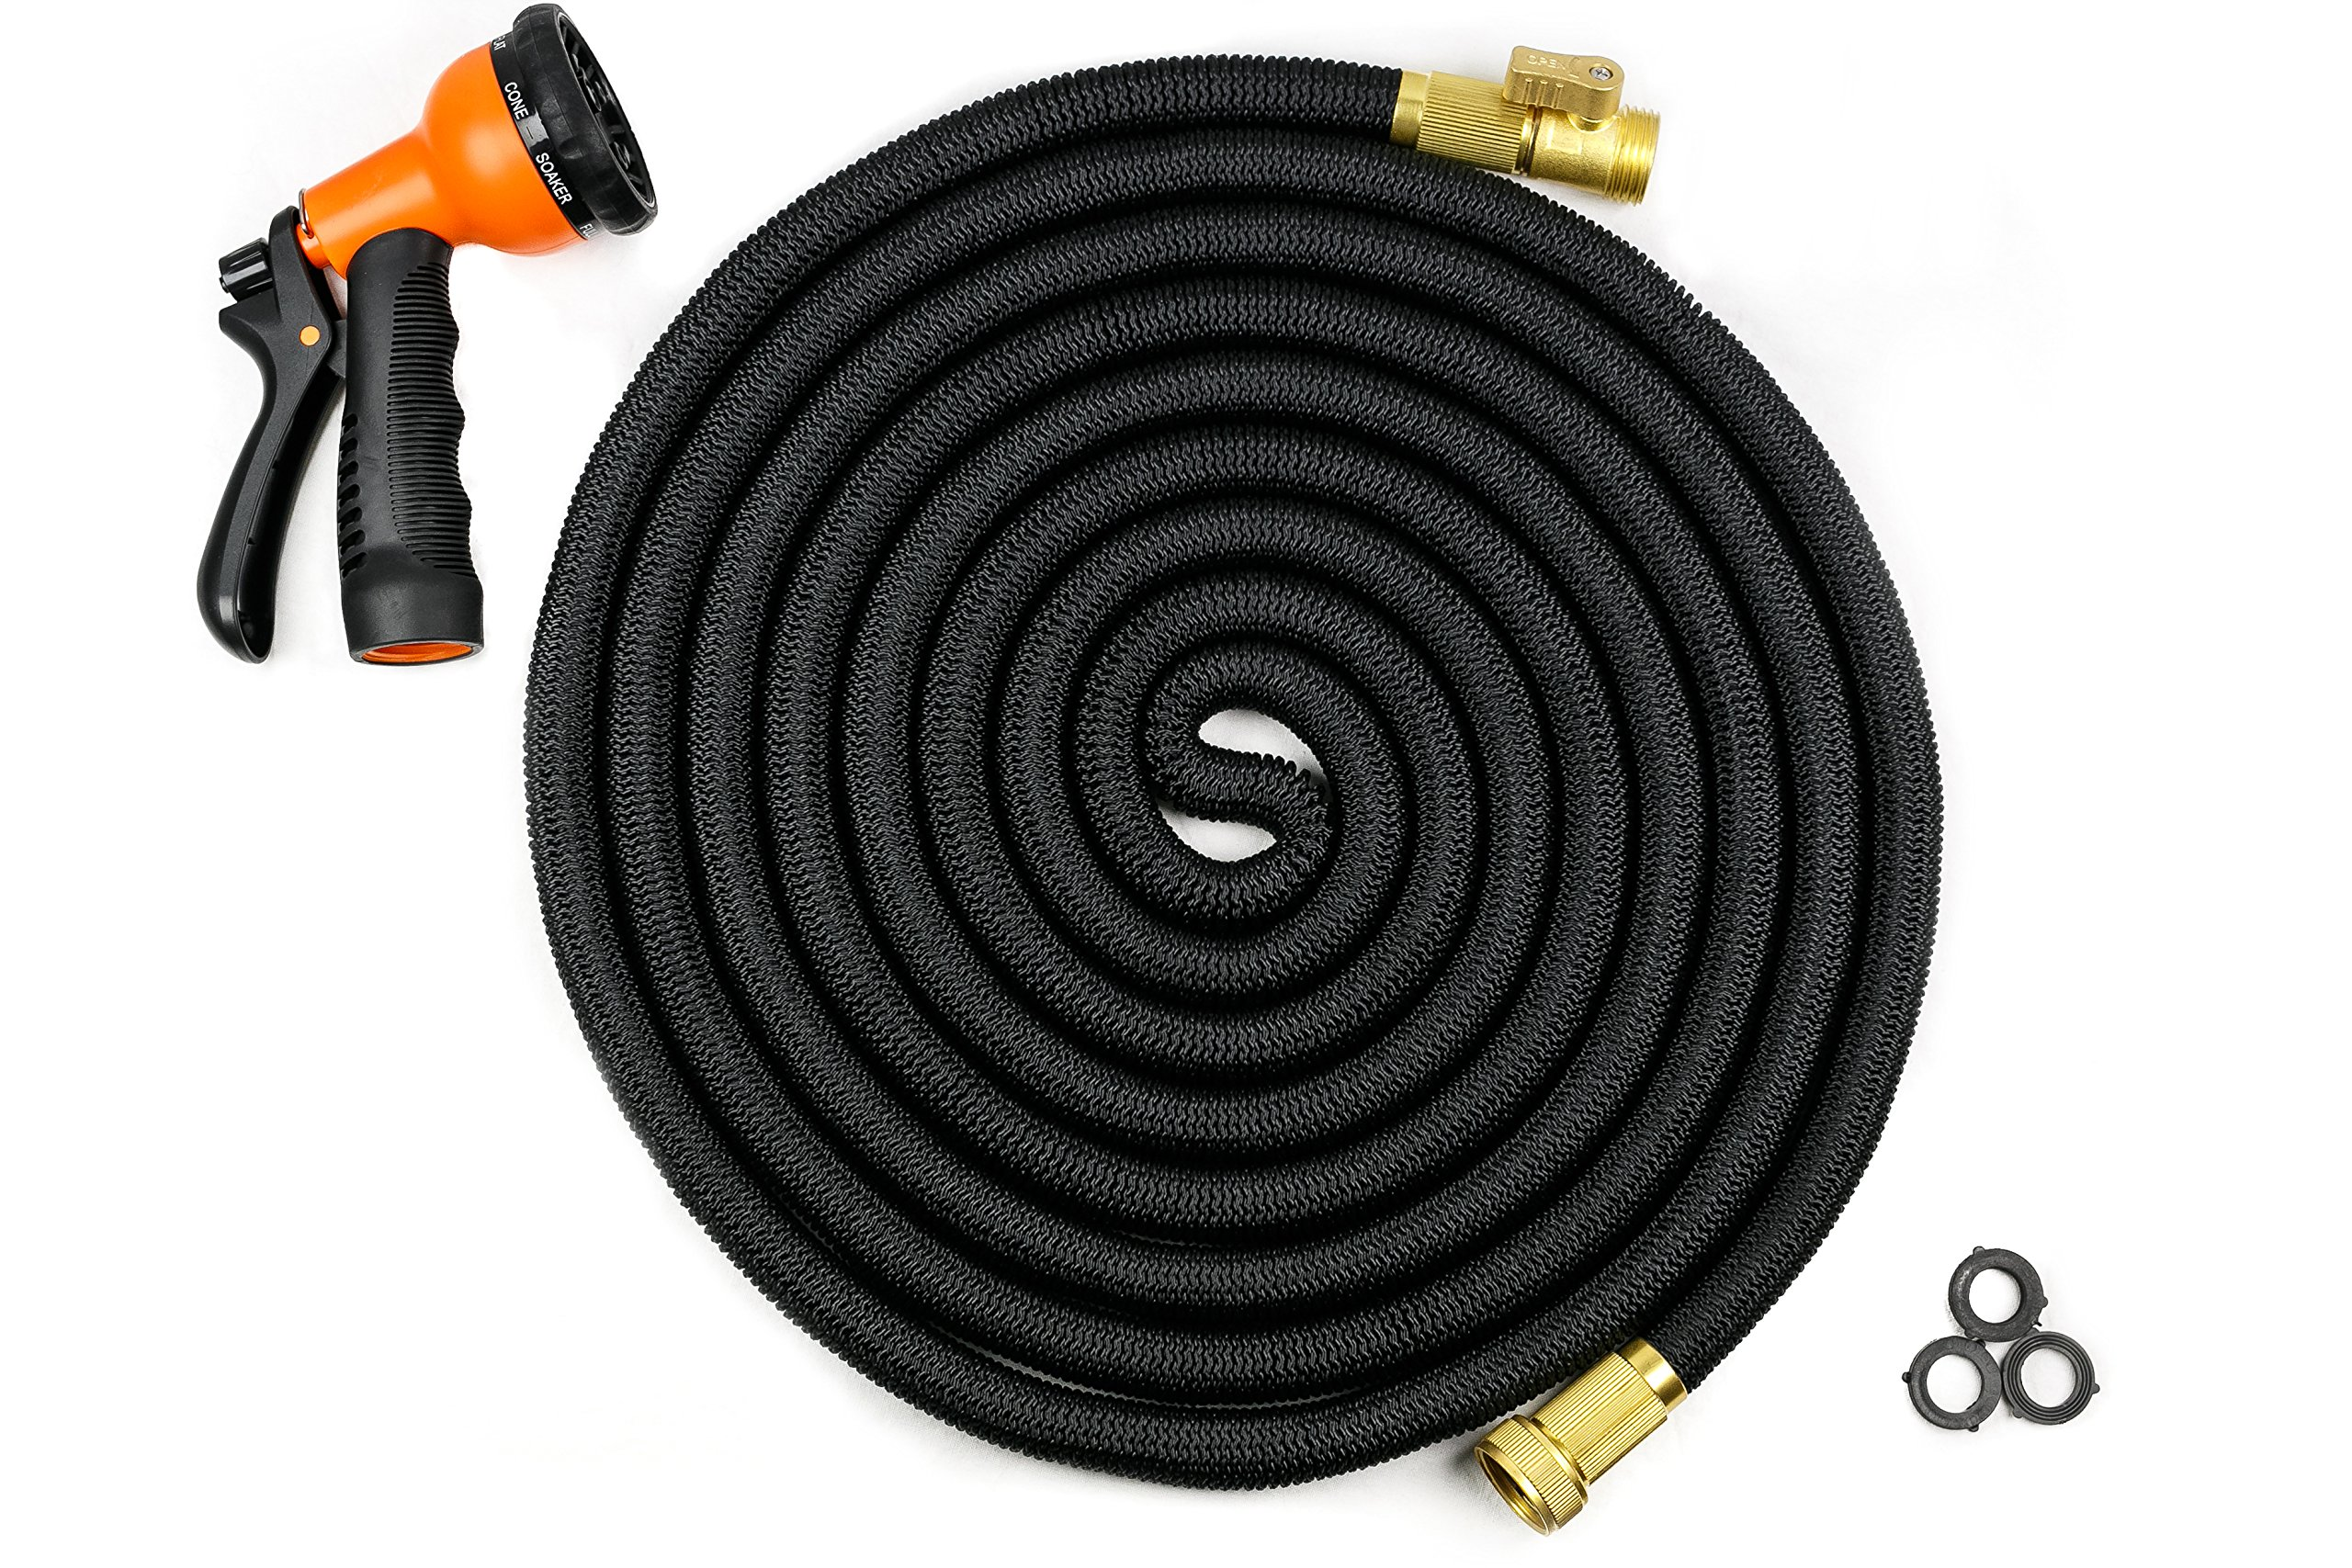 Arbour Expandable Garden Hose with Solid Brass Connectors, On/Off Valve, Triple Layer Latex Core and 8-Function Spray Nozzle (50-Feet, Black)